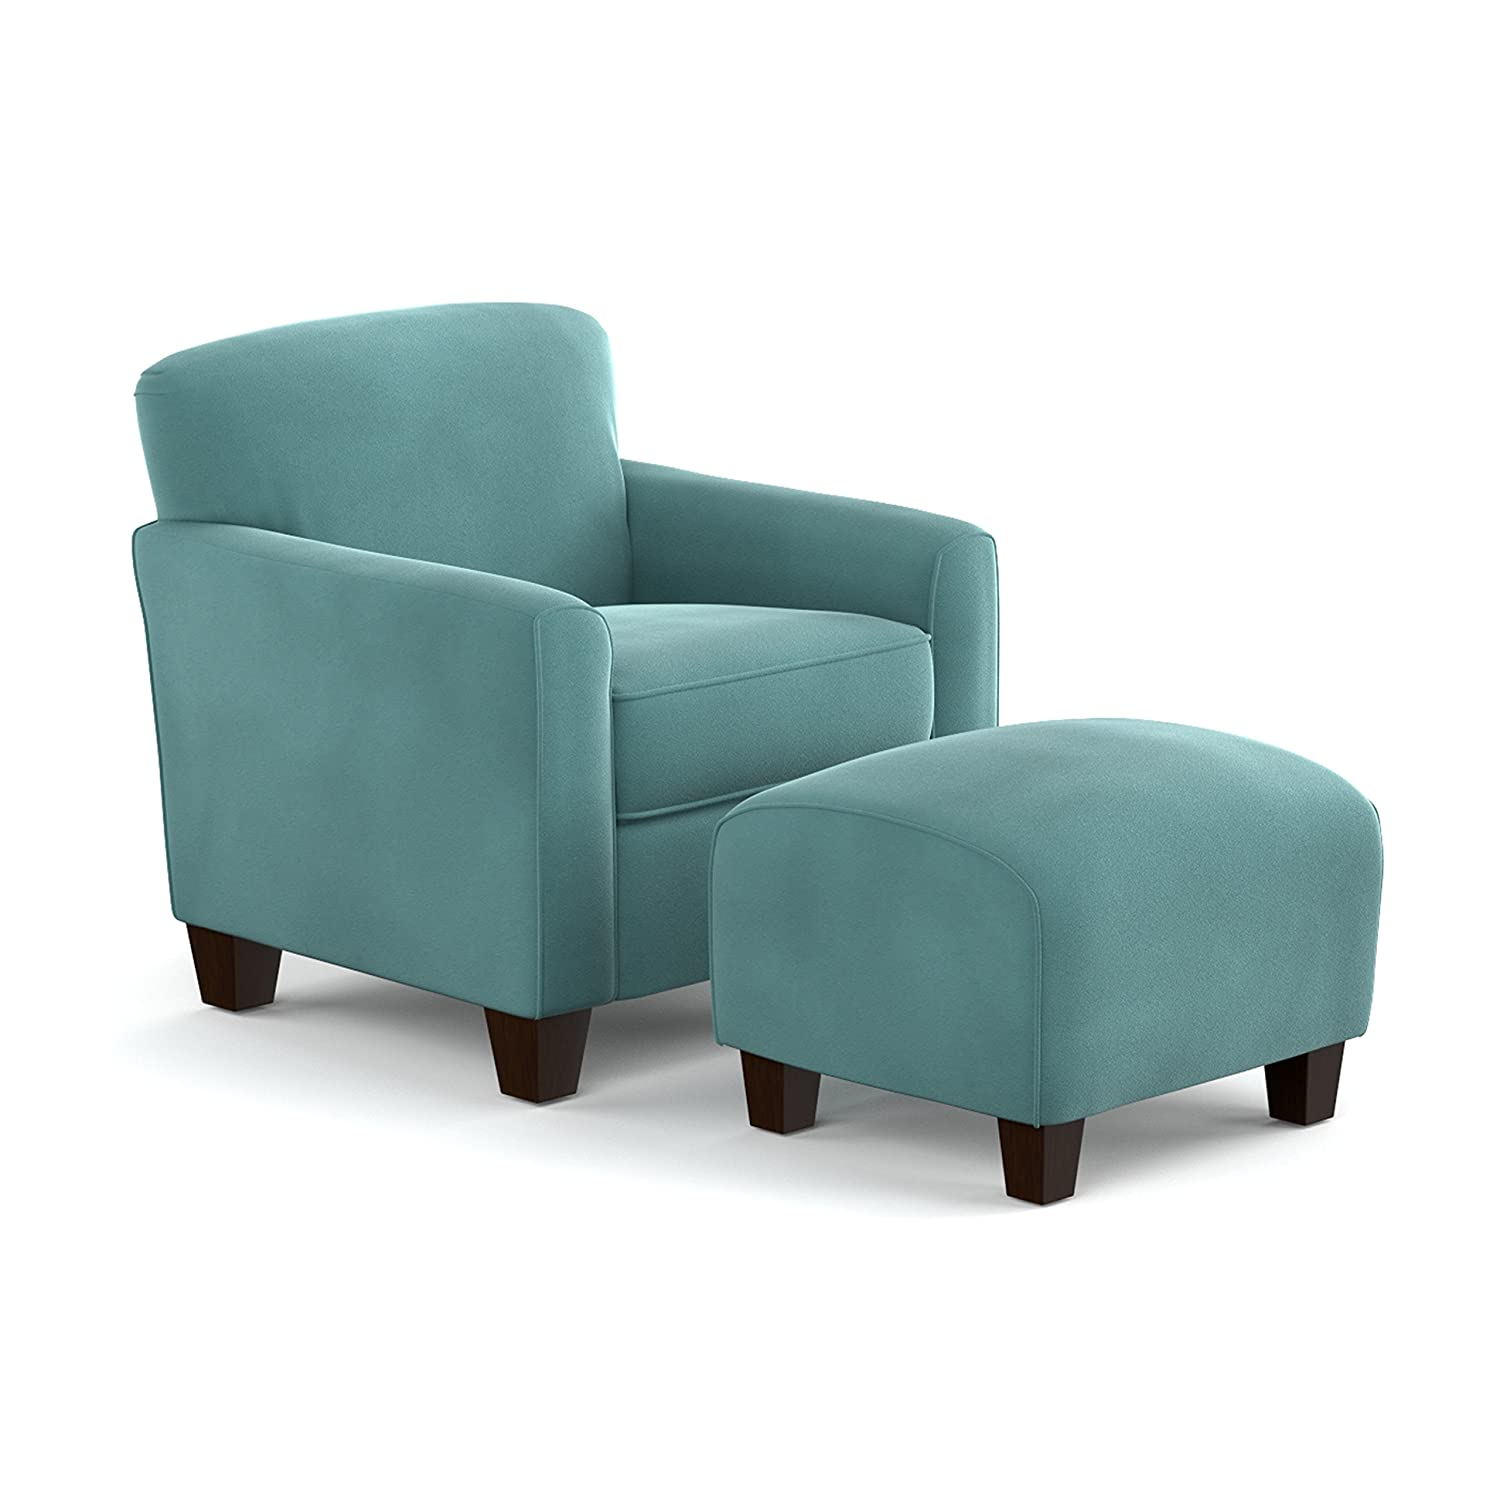 Genial Amazon.com: Domesis Littleton Chair And Ottoman In Turquoise Velvet:  Kitchen U0026 Dining